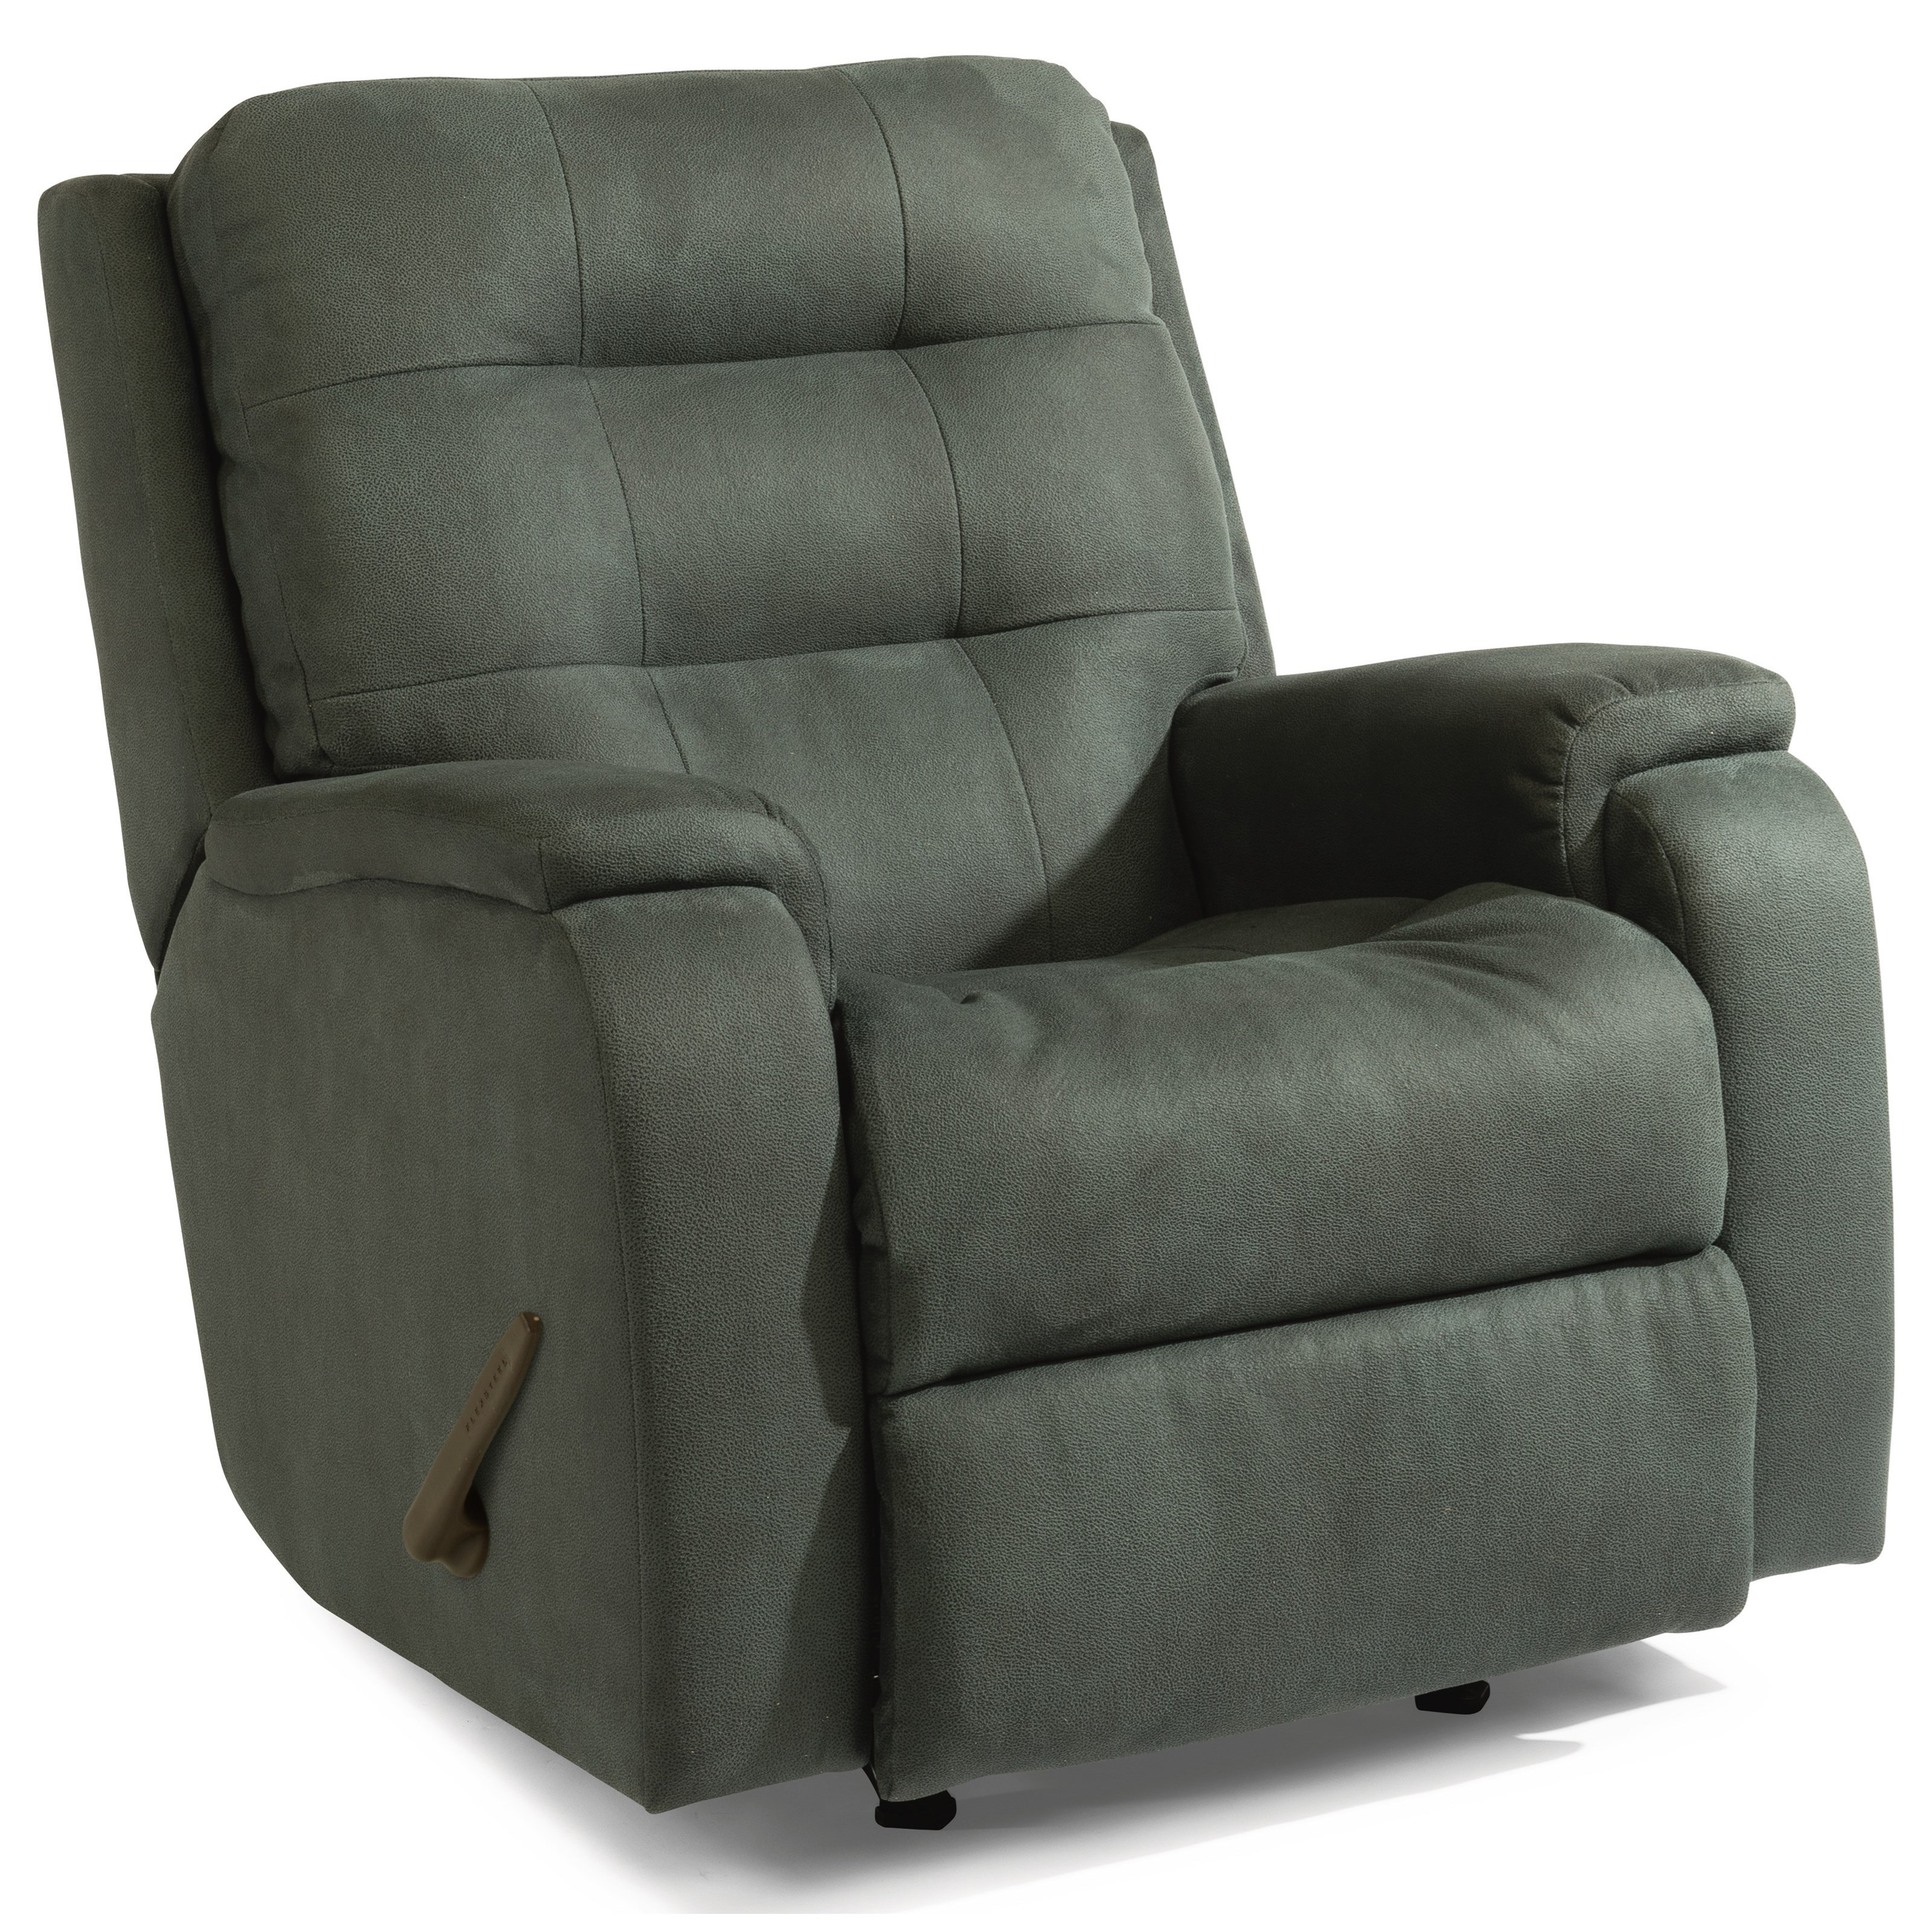 Arlo Recliner by Flexsteel at Williams & Kay